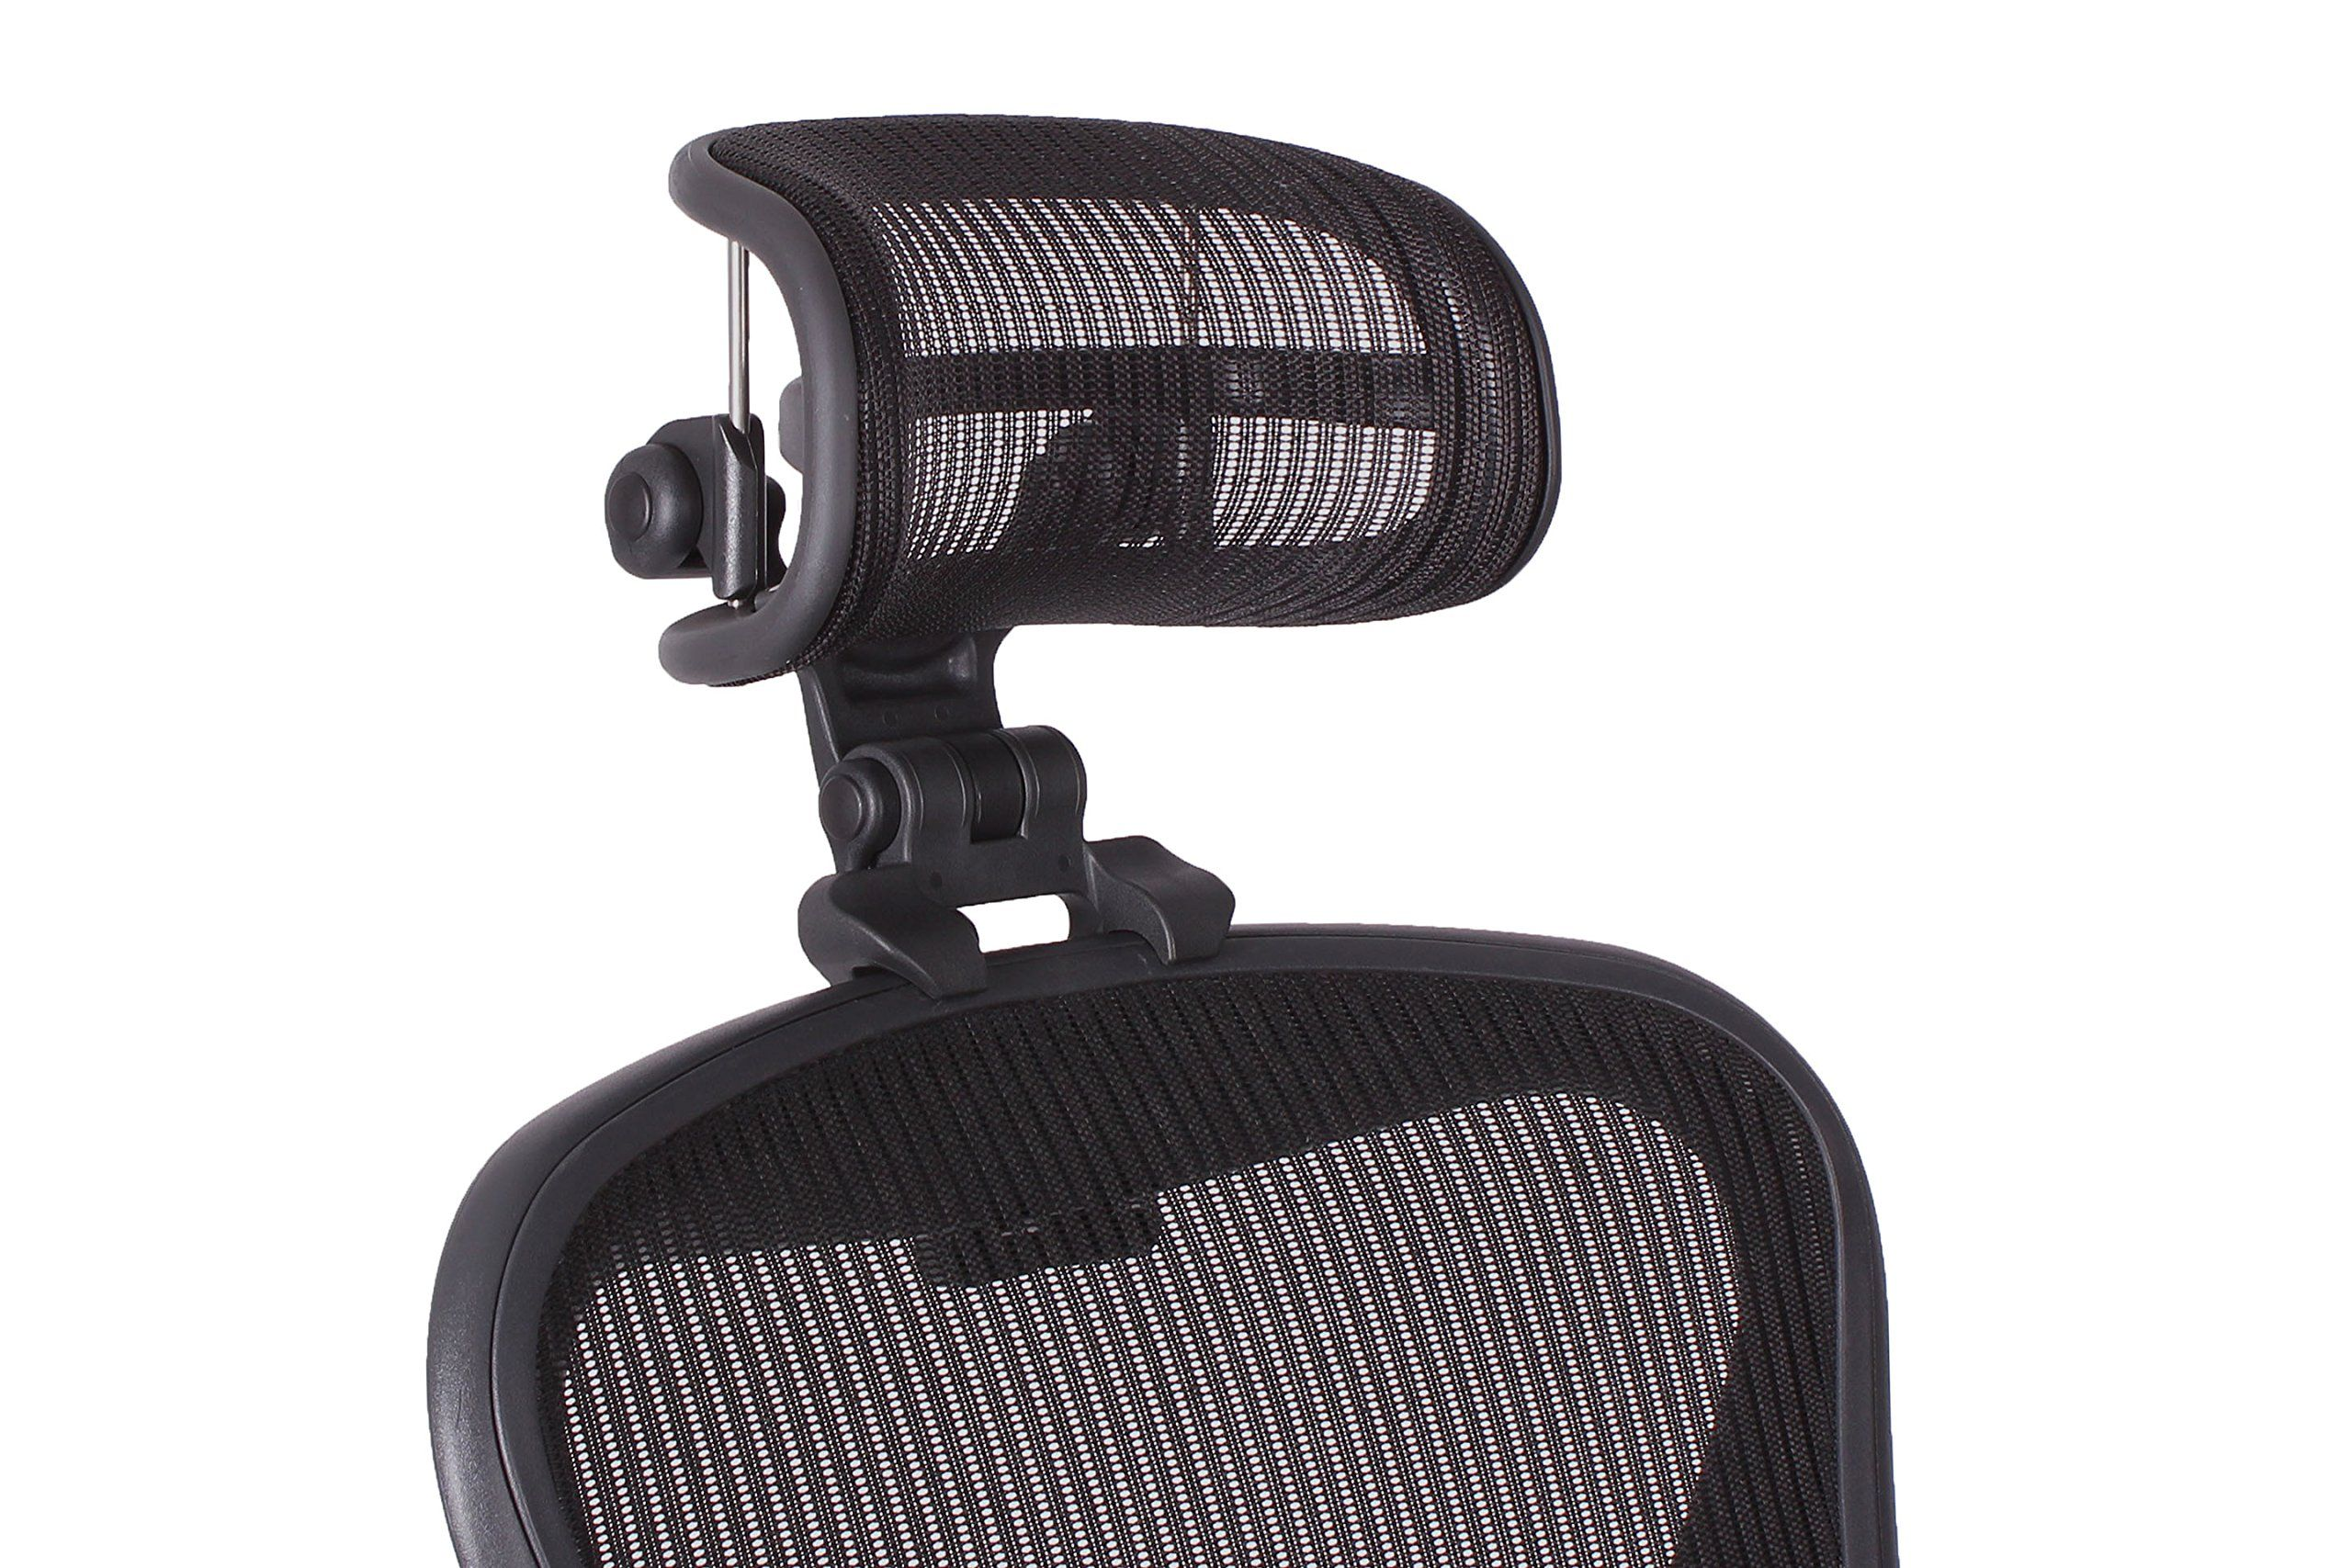 The Original Headrest For The Herman Miller Aeron Chair H3 Carbon Colors And Mesh Match Classic Aeron Chair 2016 And Earlier Models In 2020 Adjustable Office Chair Herman Miller Aeron Chair Cool Chairs